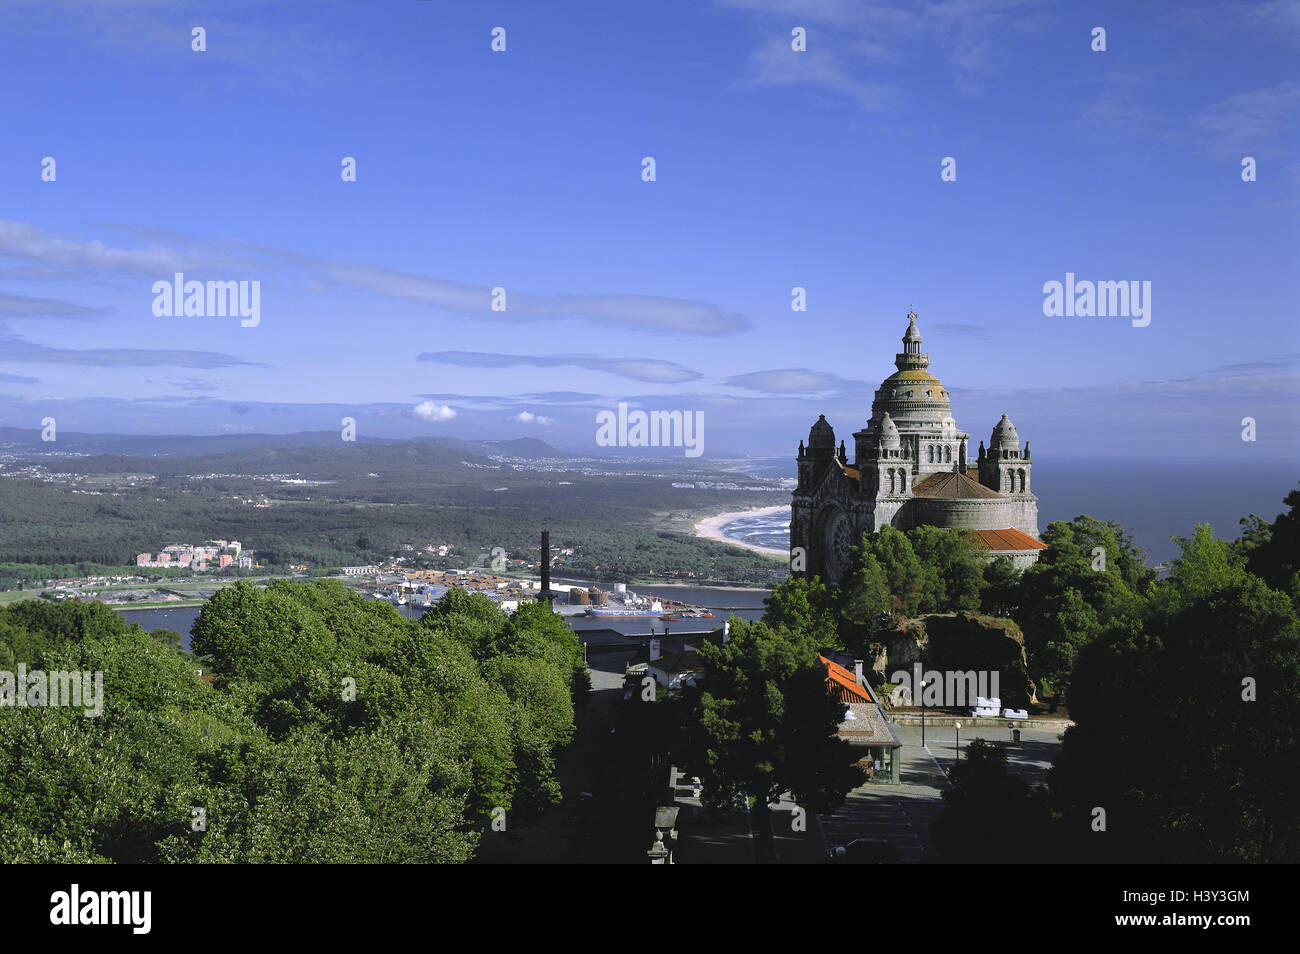 Portugal, province Minho, Monte de, Santa Luzia, pilgrimage church, Rio Lima, background, Viana Th Castelo coast, - Stock Image